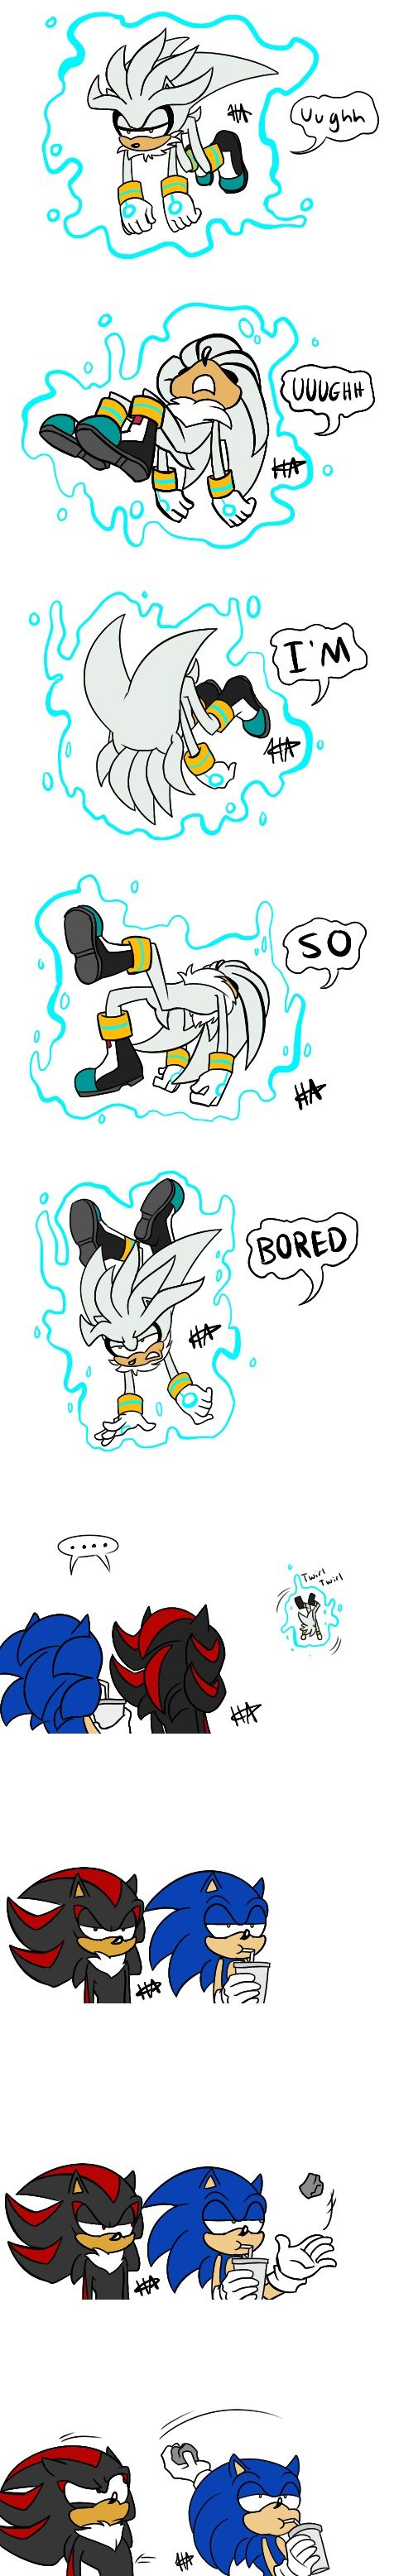 262 best silver the hedgehog images on pinterest silver the